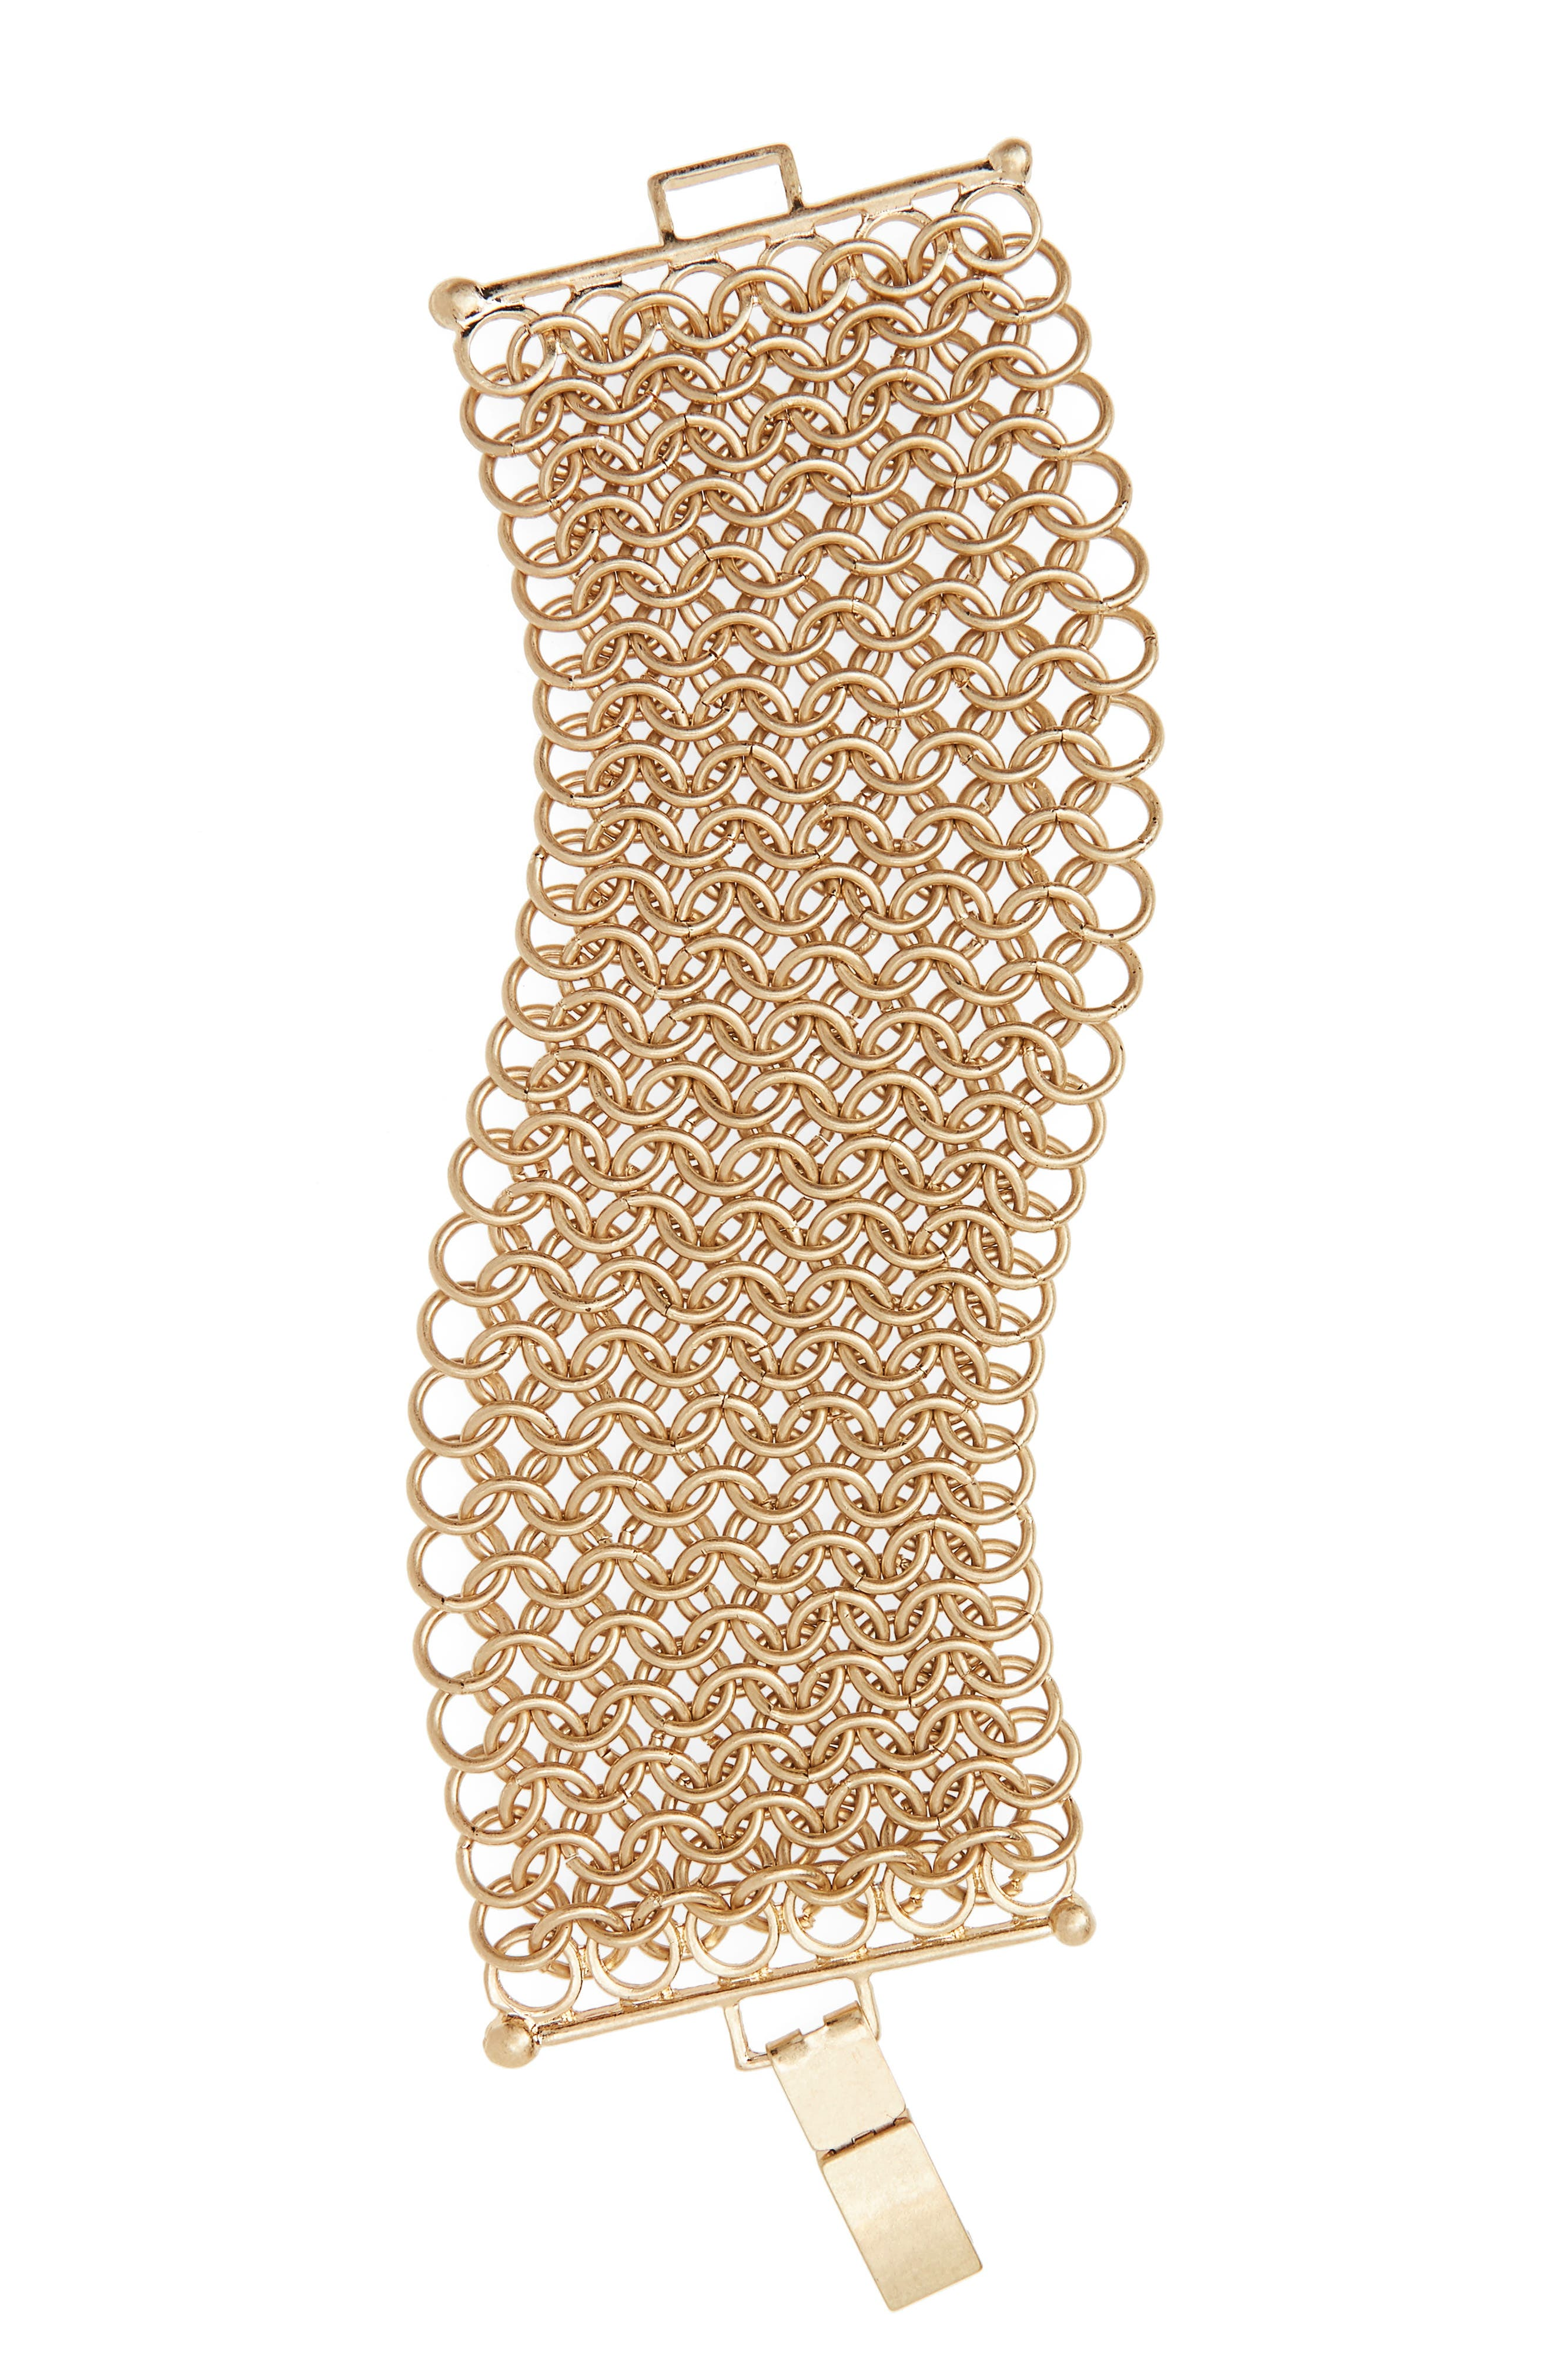 Interlocking Mesh Chain Bracelet,                             Main thumbnail 1, color,                             710